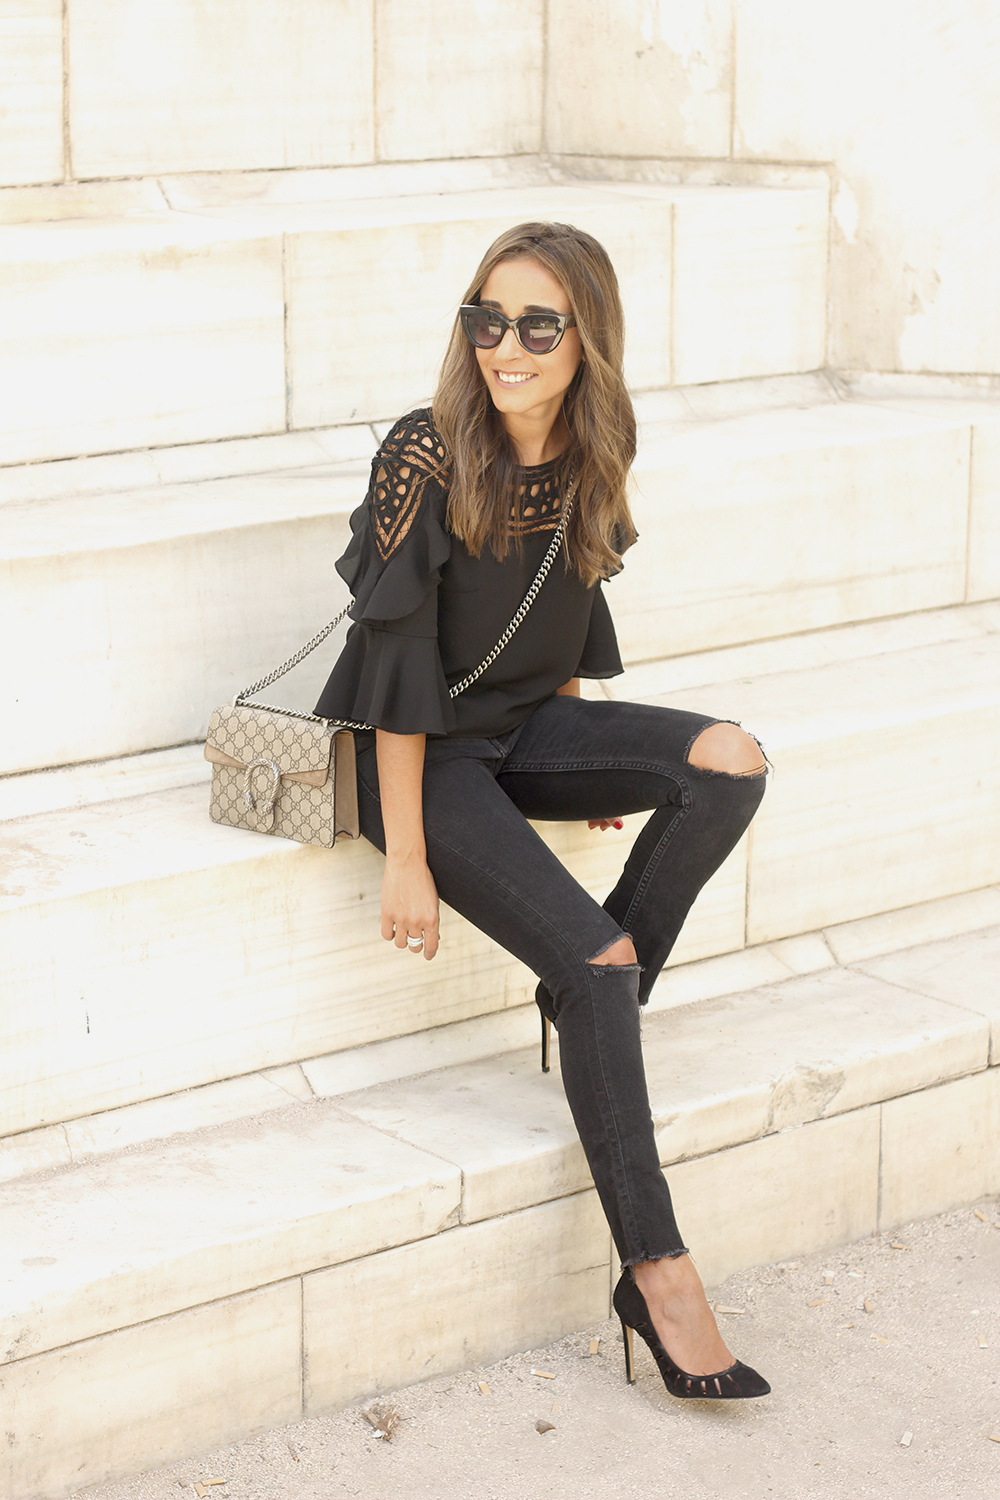 black top black jeans heels gucci bag sunnies outfit fashion style03